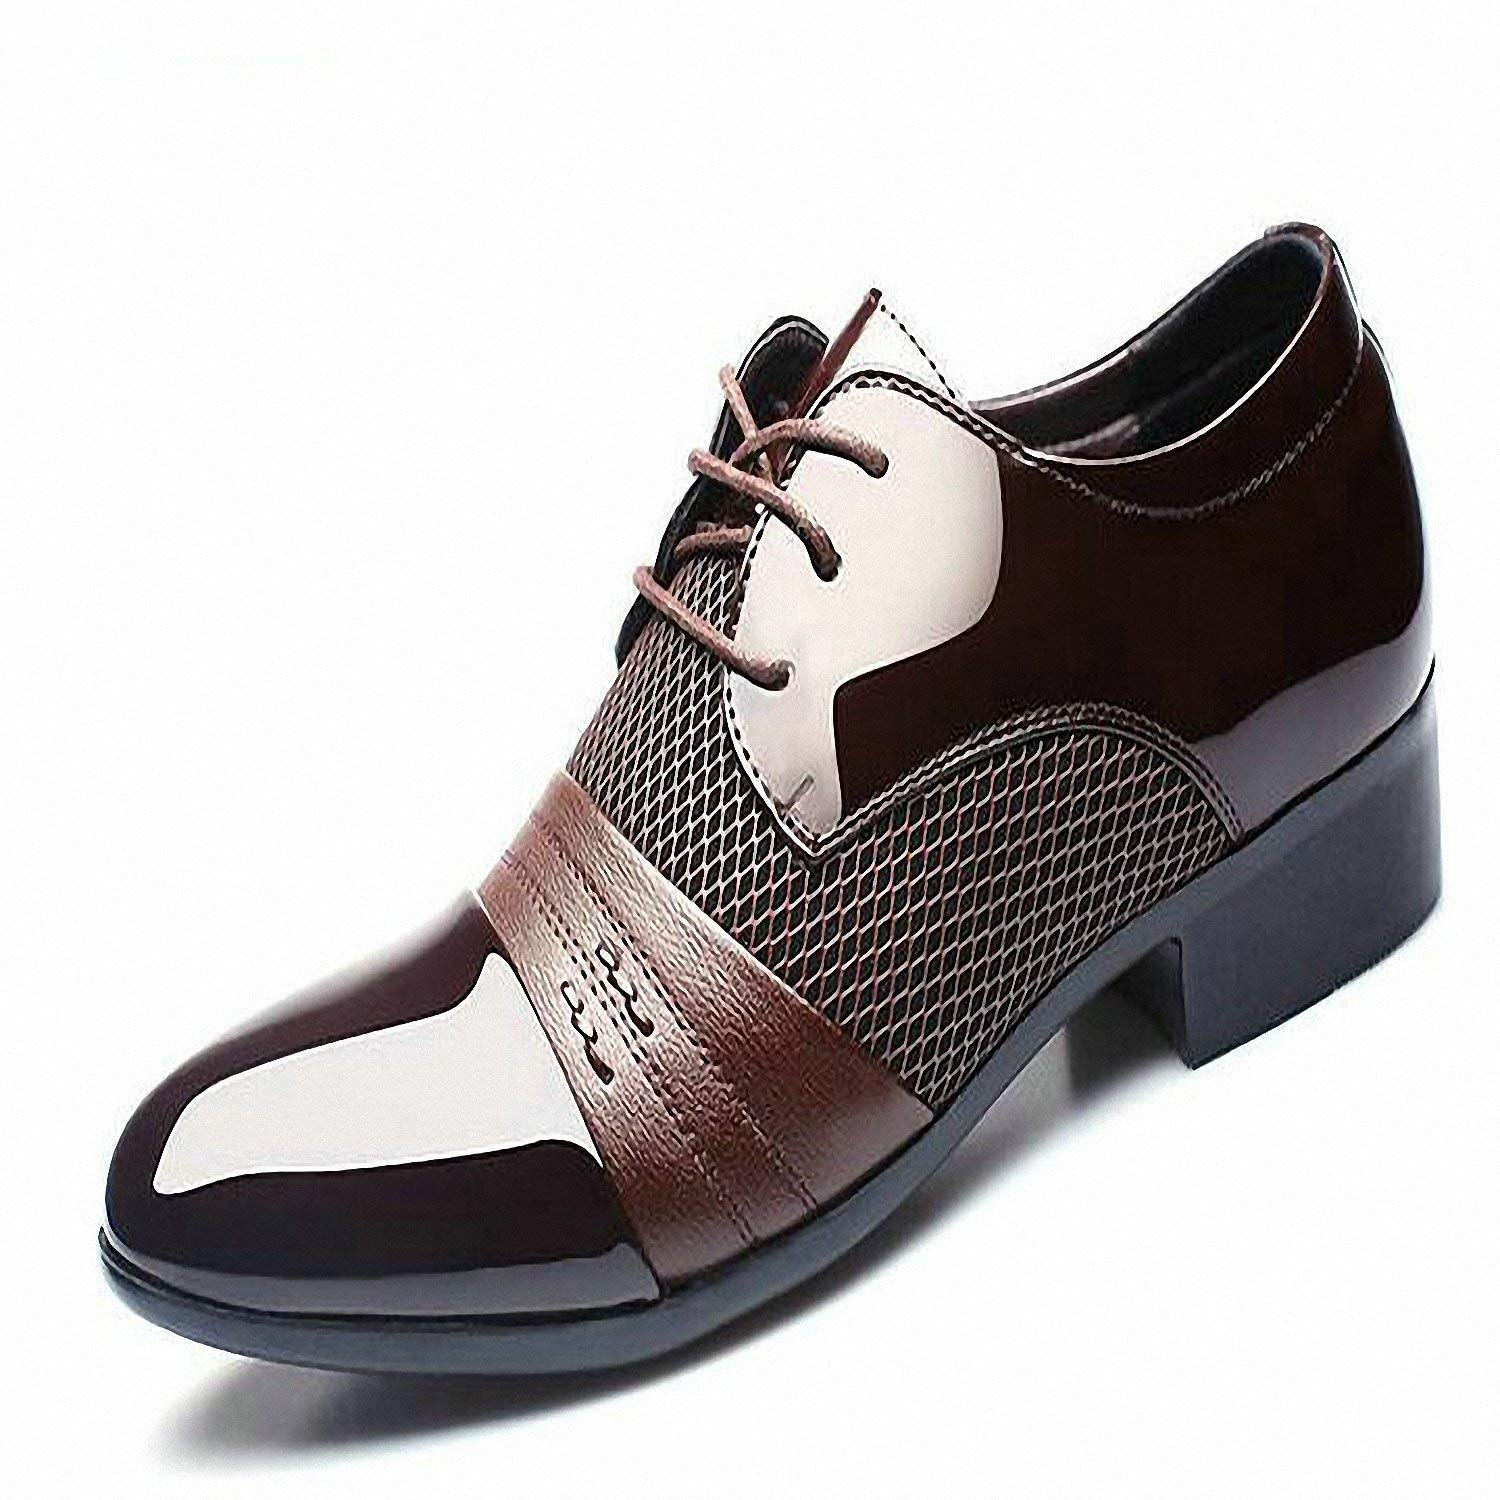 Baolustre Working Office Shoes Mens Patent Leather Shoes Business Wedding Shoes Lace up Pointed Toe Flat Big Size 37-47 Brown 12